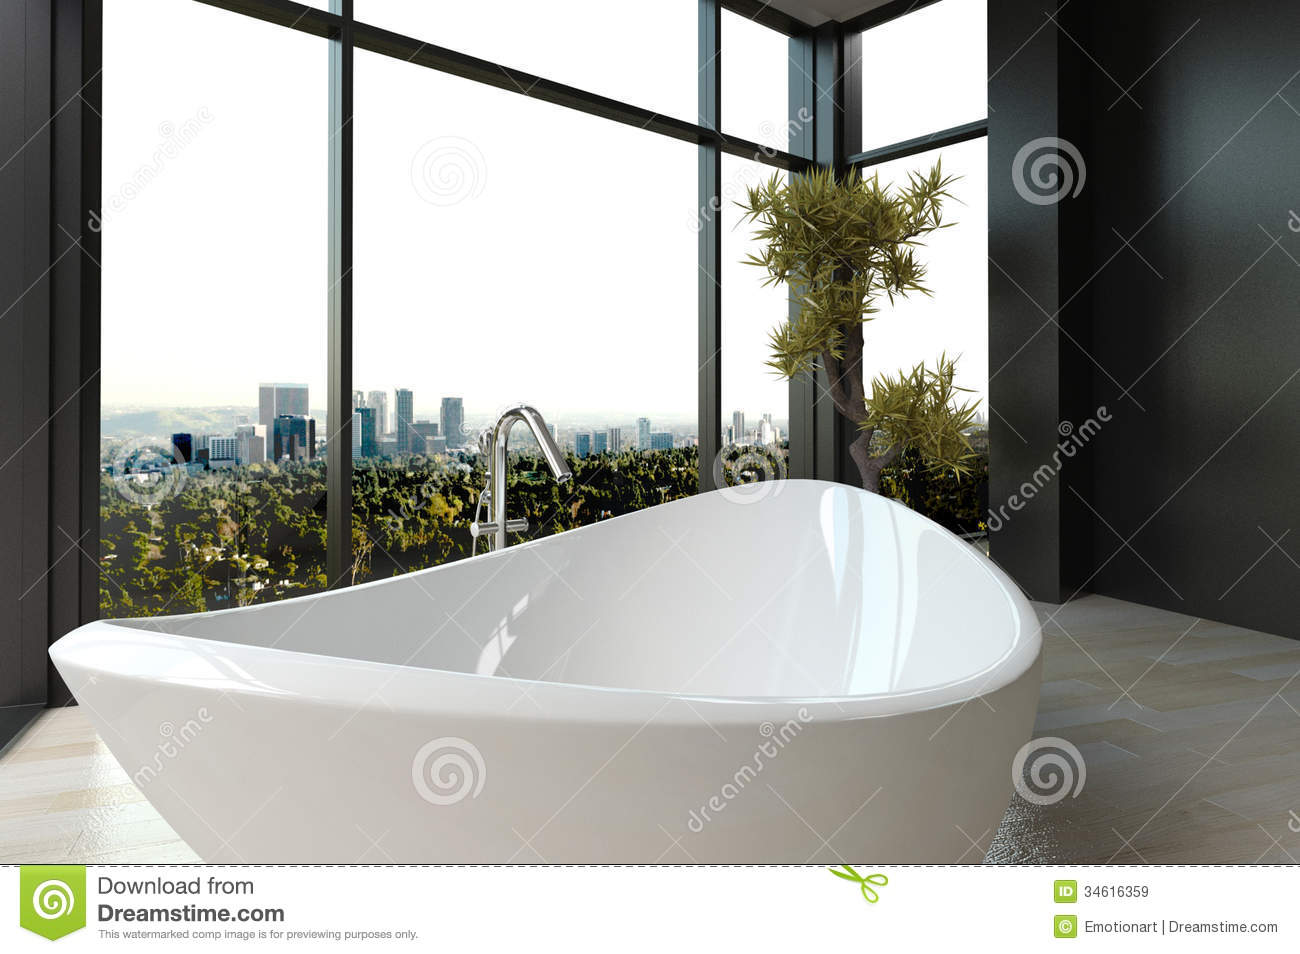 Expensive Luxury Bathtub Against Panoramic Window With